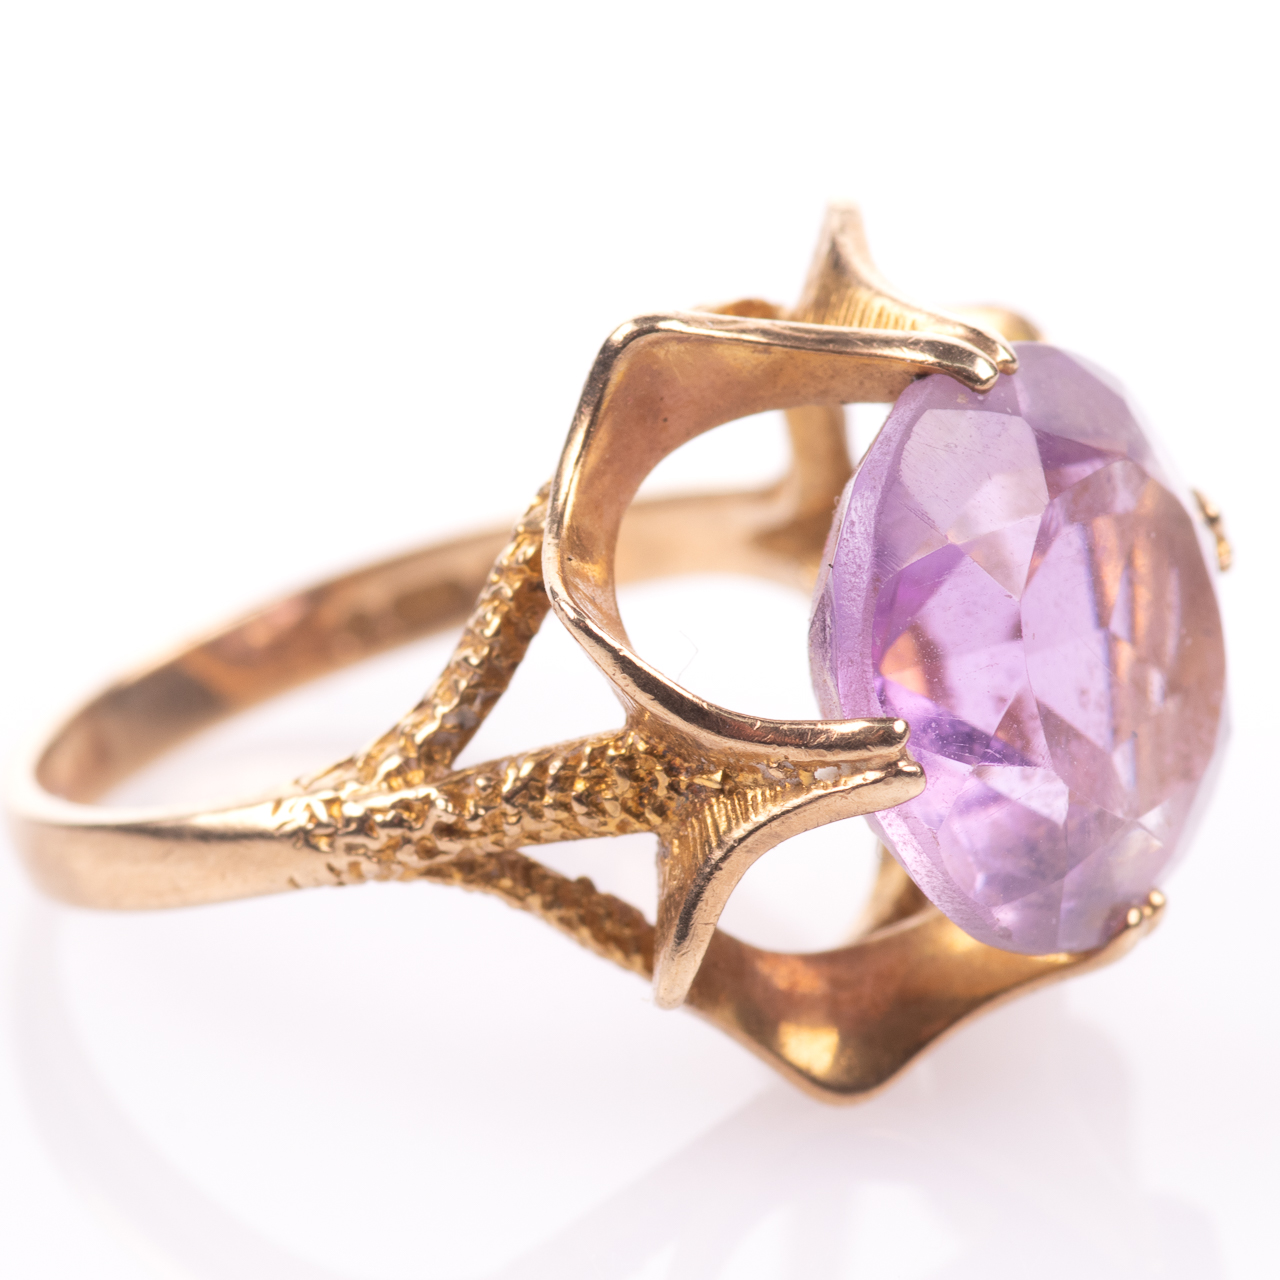 9ct Gold 6.45ct Amethyst Ring London 1974 - Image 7 of 8